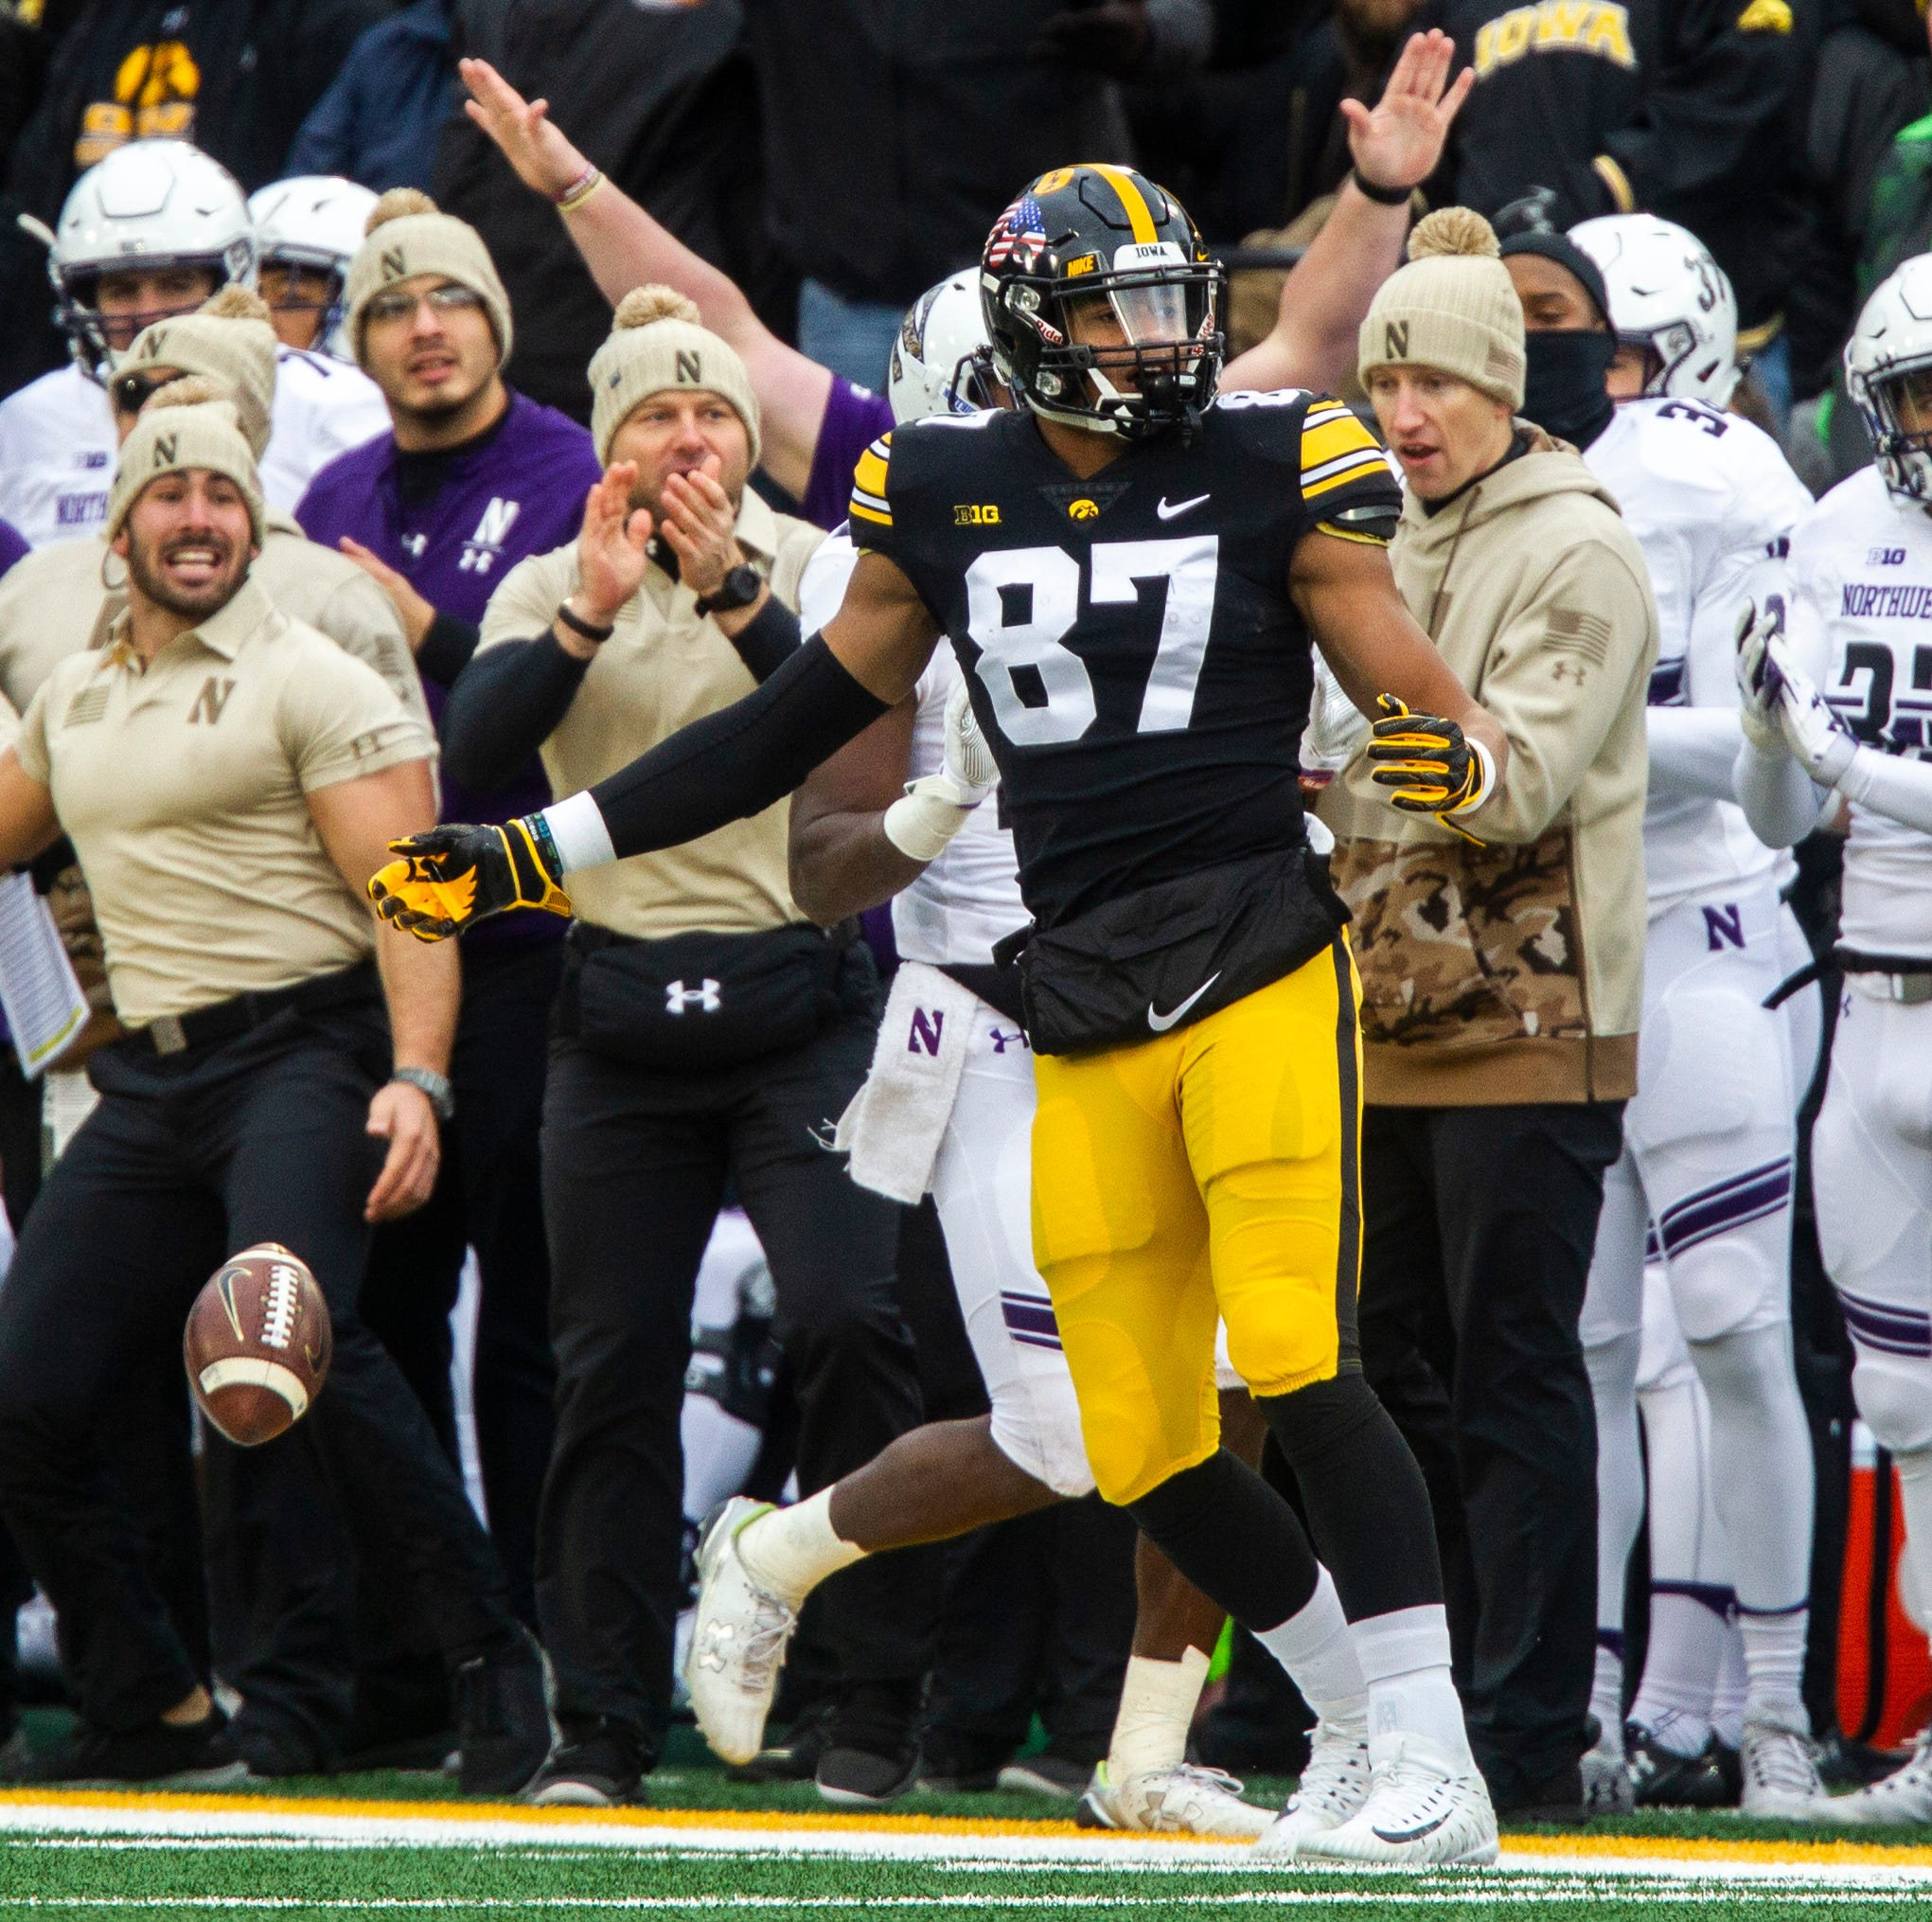 Leistikow: Noah Fant's perplexing usage emblematic of Iowa Hawkeyes' free fall